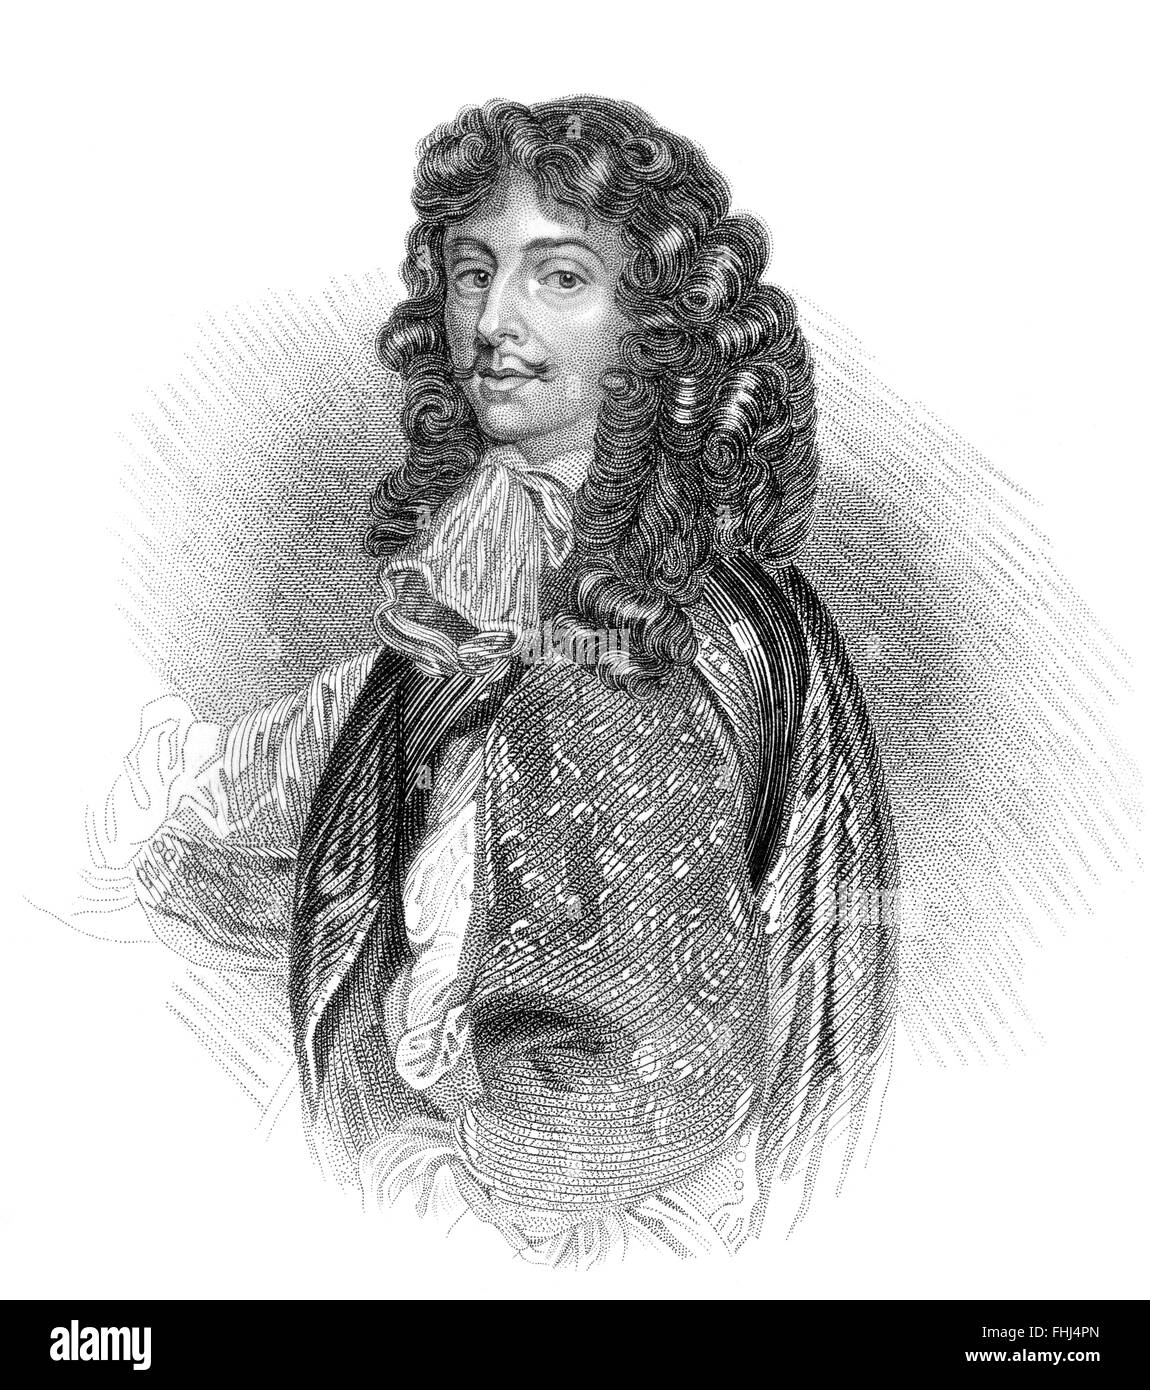 David Leslie, 1st Lord Newark, c. 1600-1682, a cavalry officer and General in the English Civil War and Scottish - Stock Image